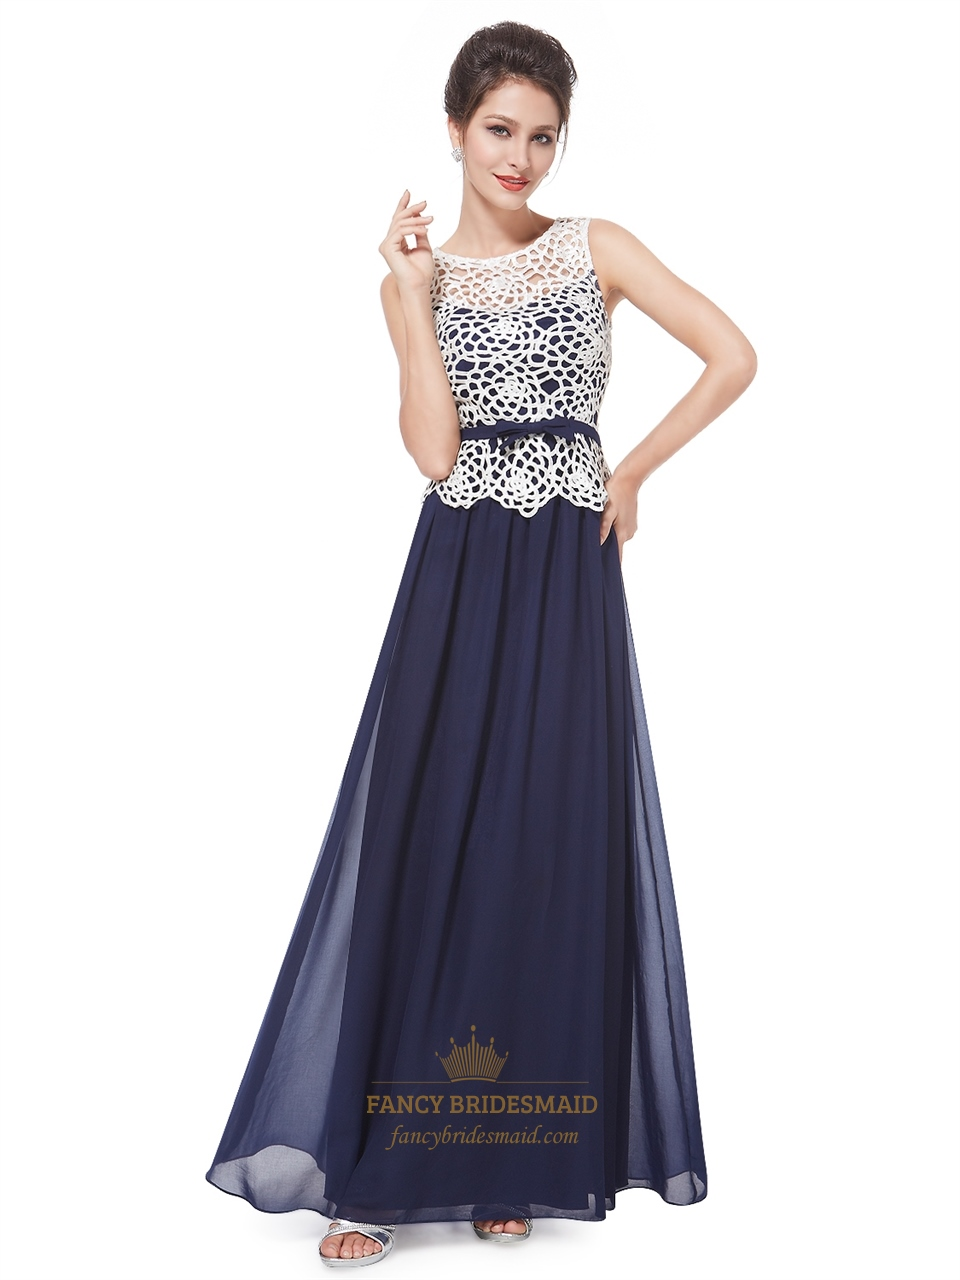 Blue Prom Dress With White Lace Top,Women\'s Sleeveless Illusion Long ...